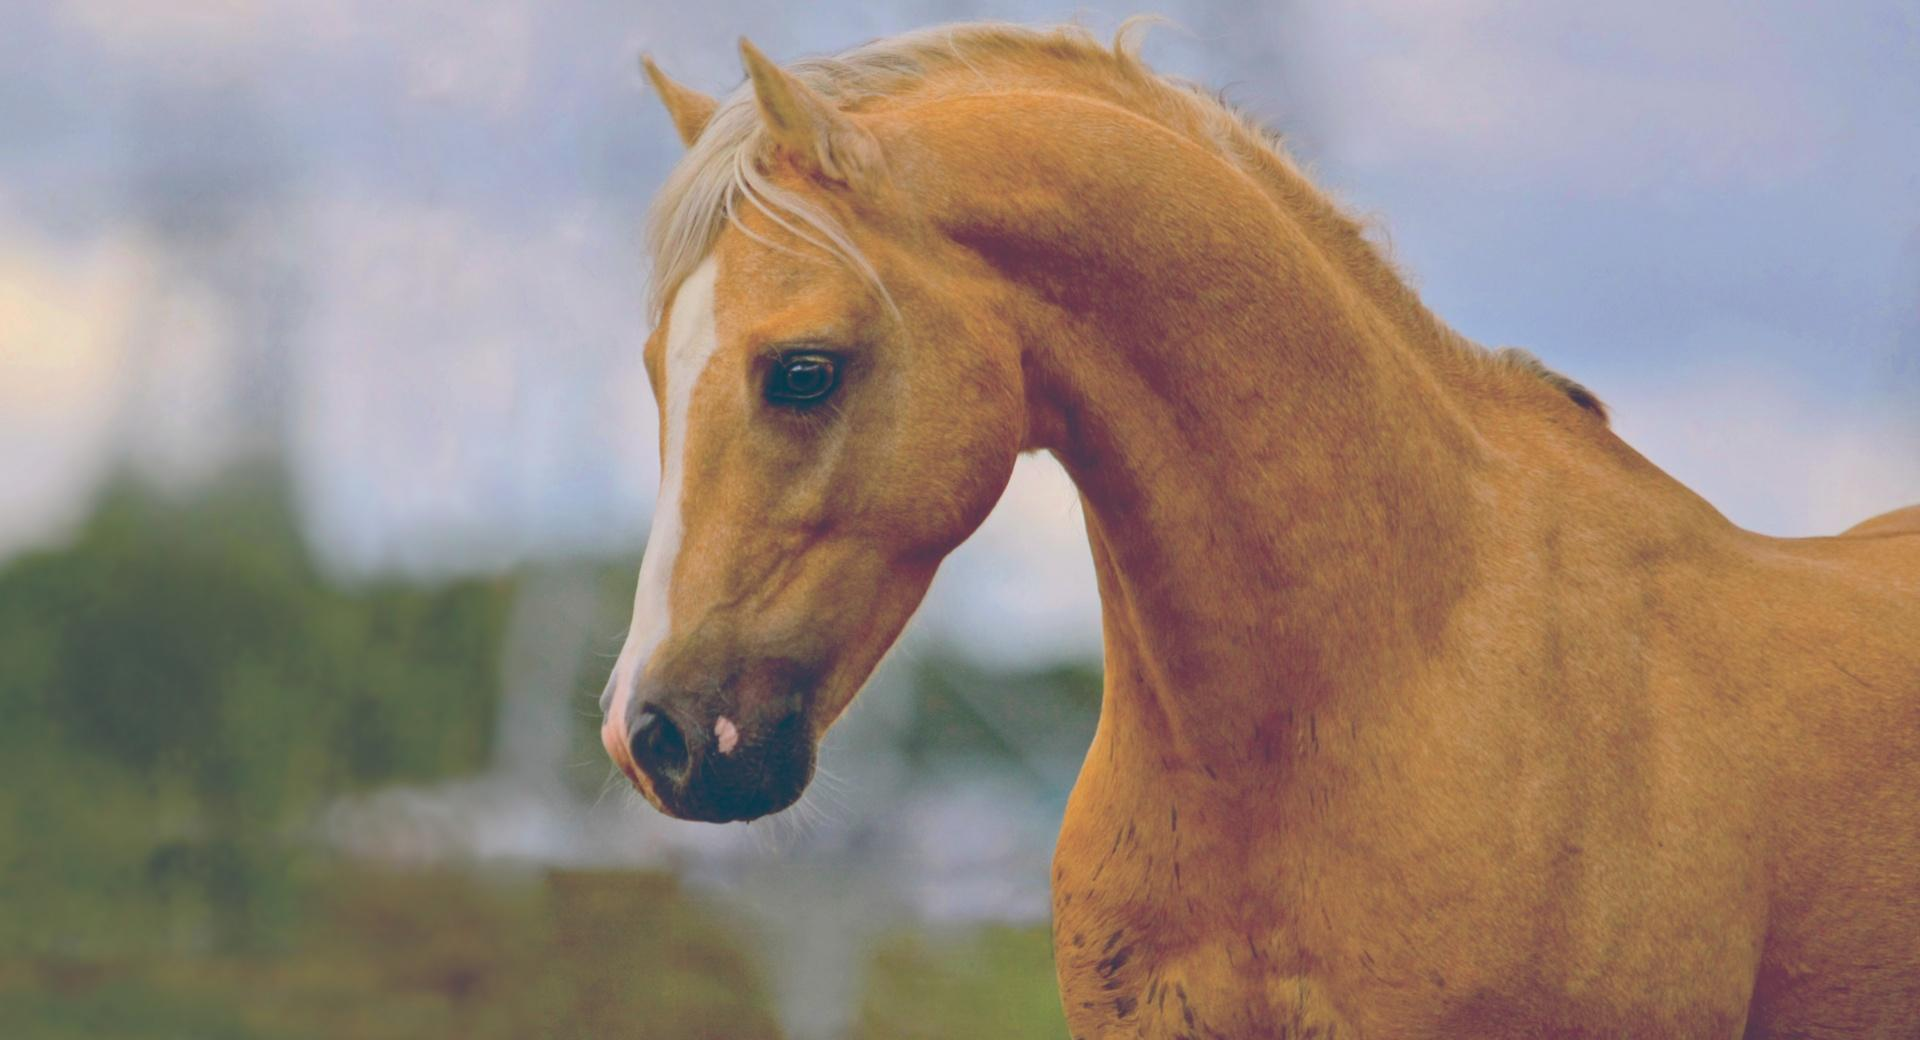 Horse Head wallpapers HD quality